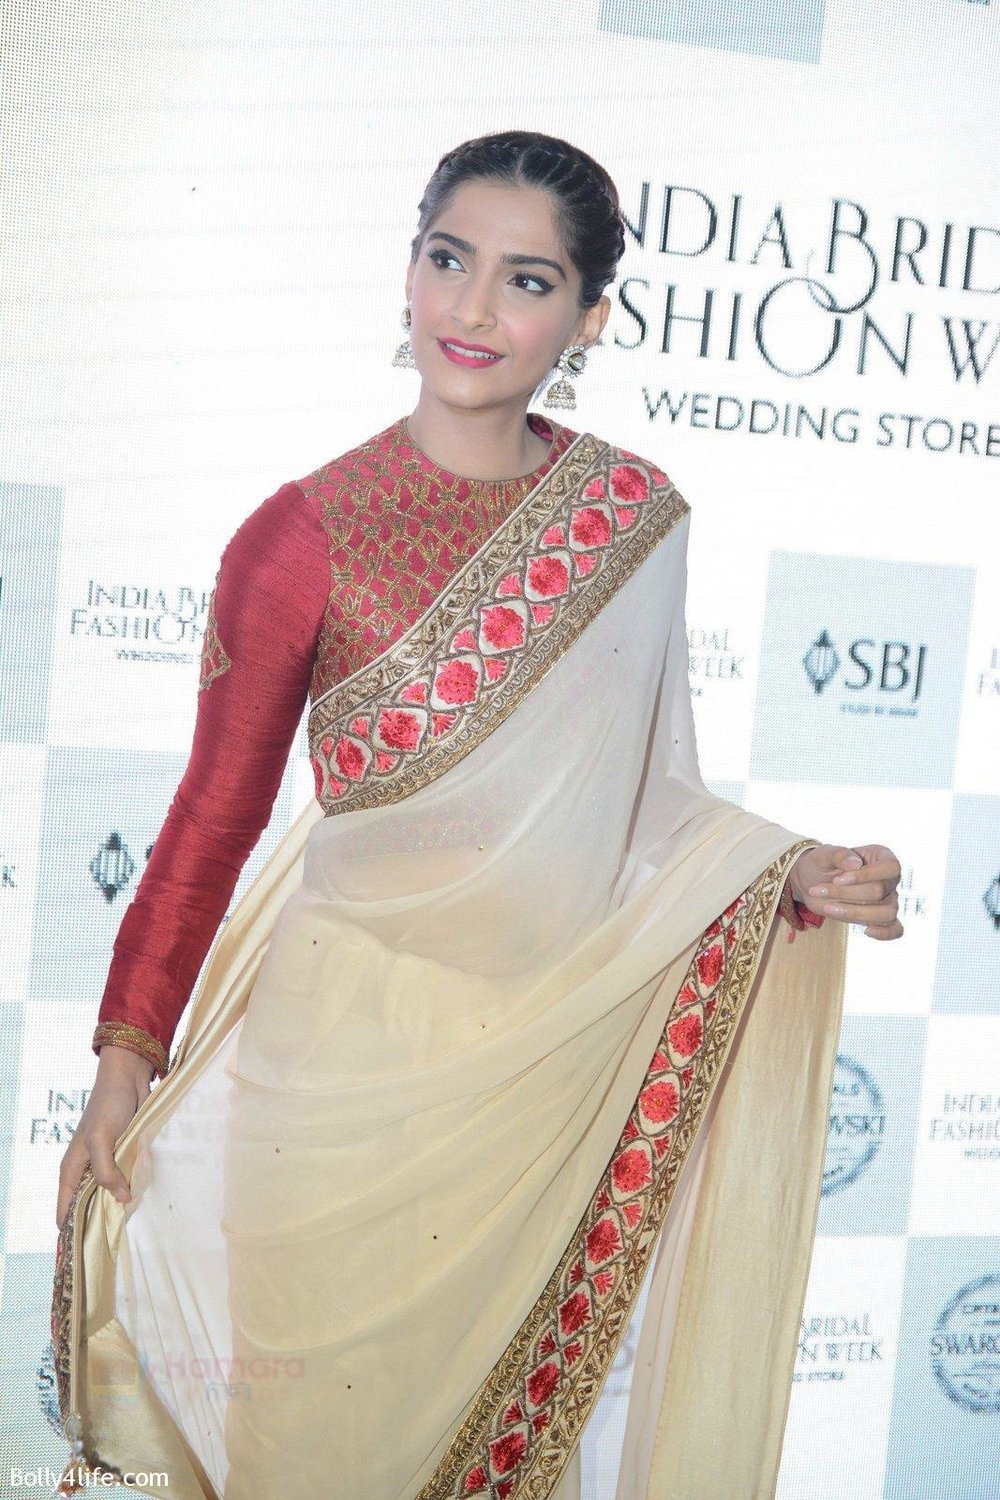 Sonam-Kapoor-during-the-launch-of-the-first-Indian-Bridal-Fashion-Week-Wedding-Store-in-New-Delhi-on-9th-Sept-2016-35.jpg